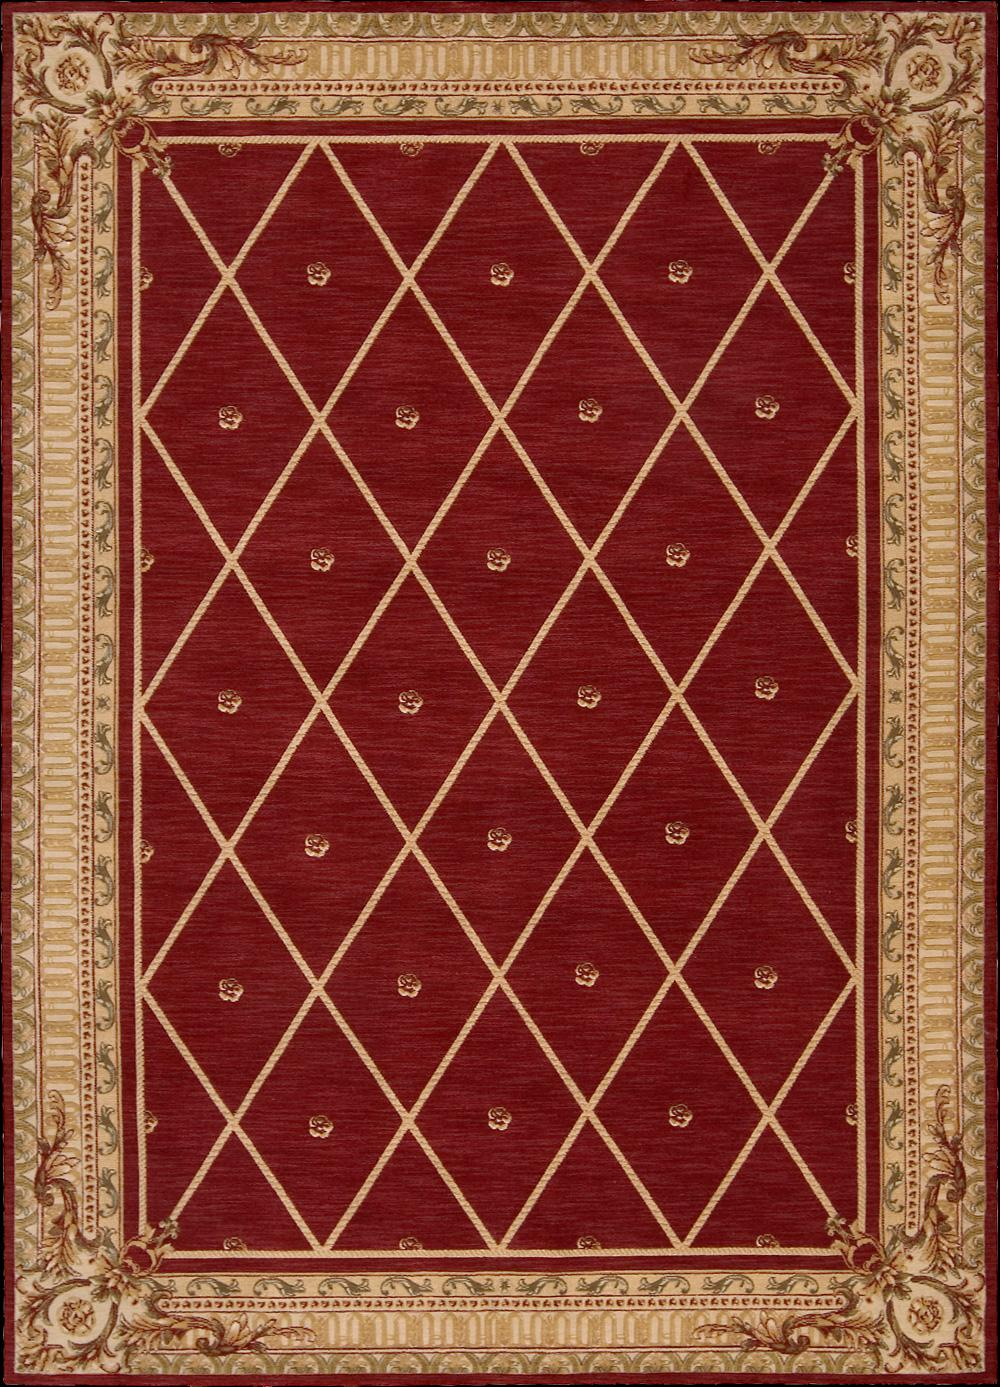 "Nourison Ashton House Area Rug 5'6"" x 7'5"" - Item Number: 32155"